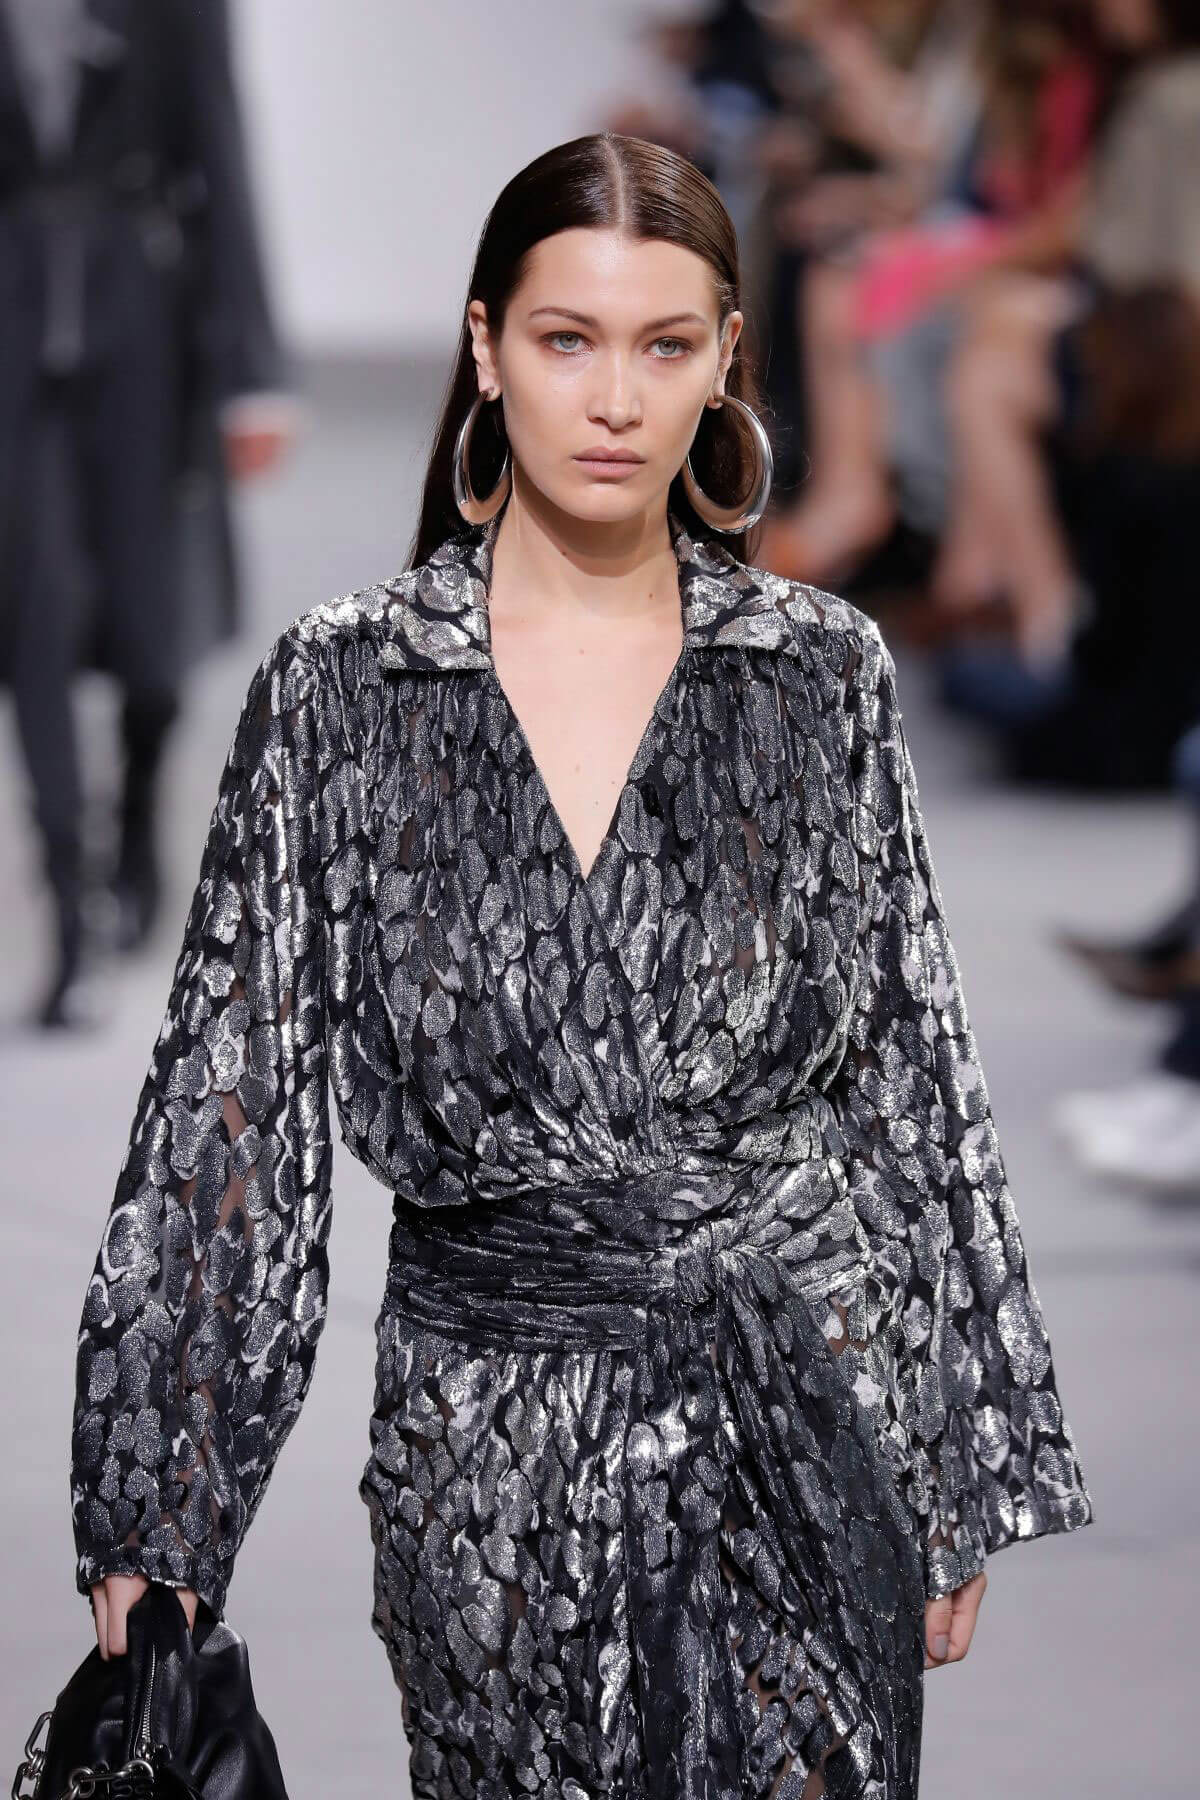 Bella Hadid Stills Leaves Michael Kors Fashion Show in New York